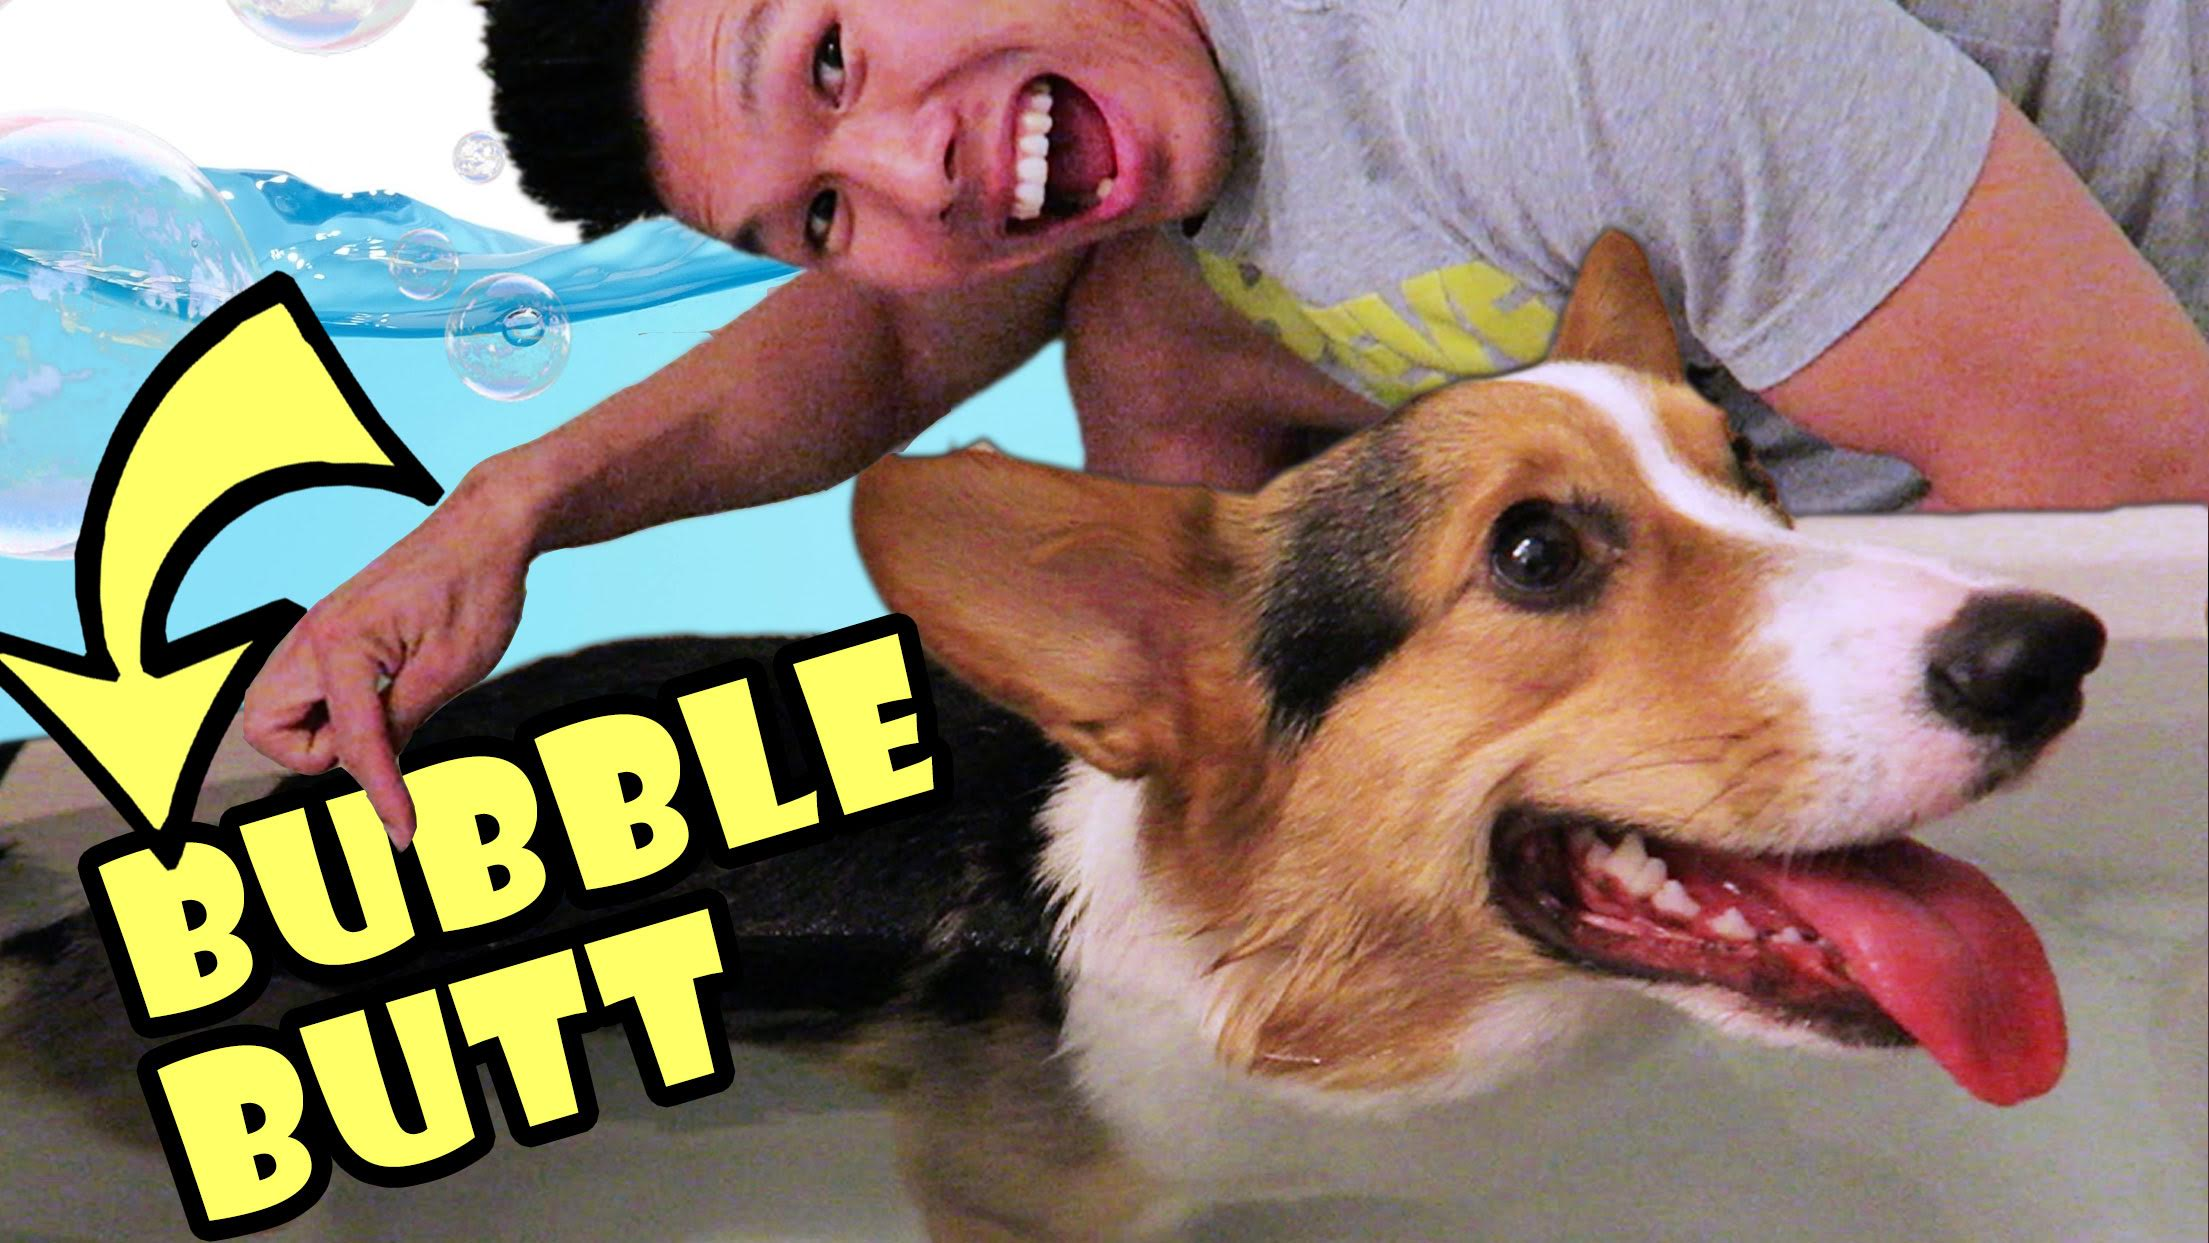 DO CORGI DOG BUTTS FLOAT?!